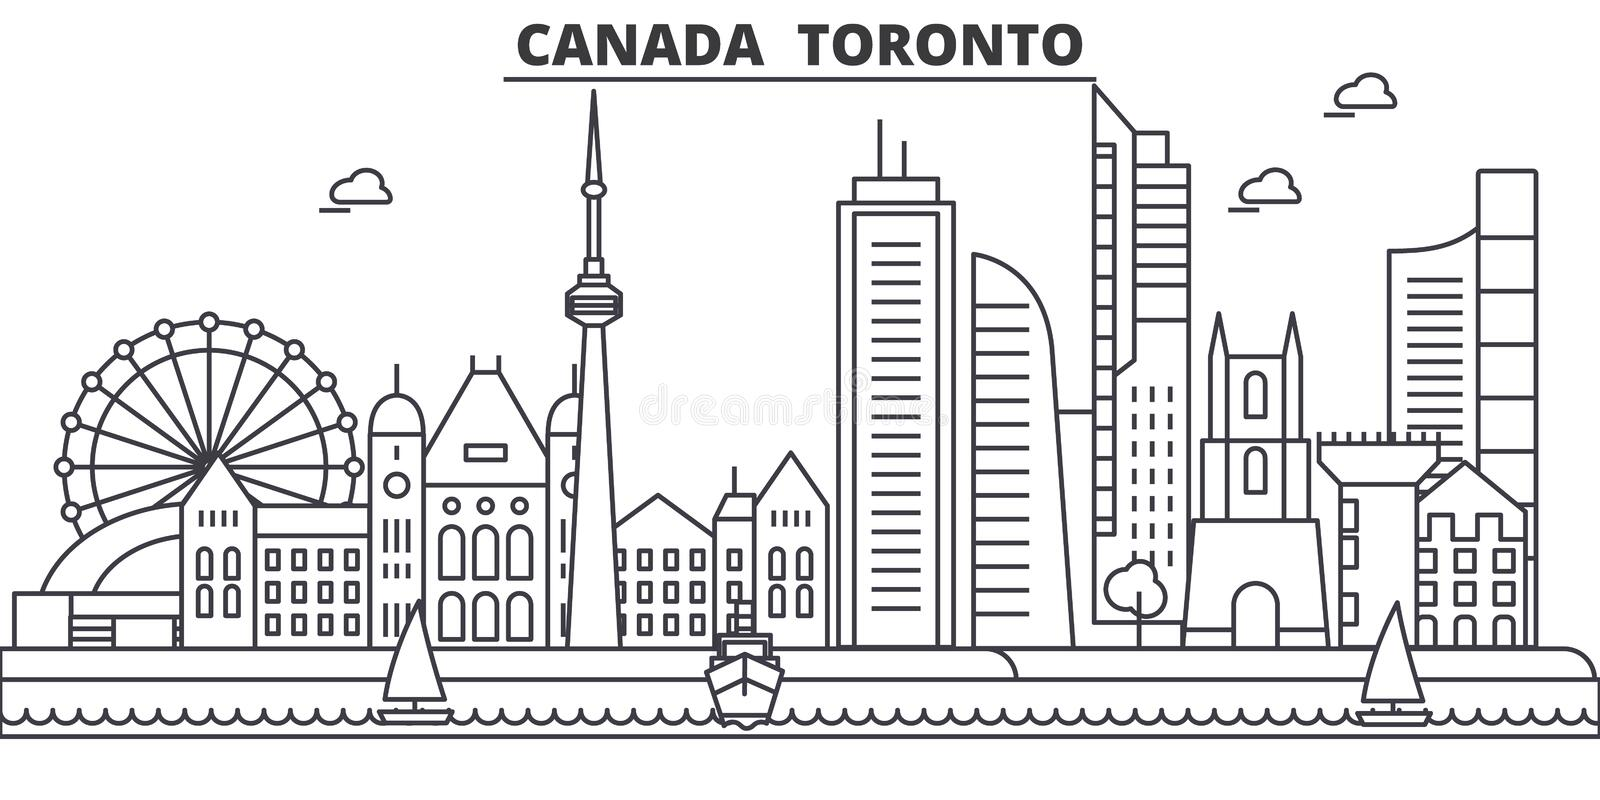 Canada, Toronto architecture line skyline illustration. Linear vector cityscape with famous landmarks, city sights royalty free illustration